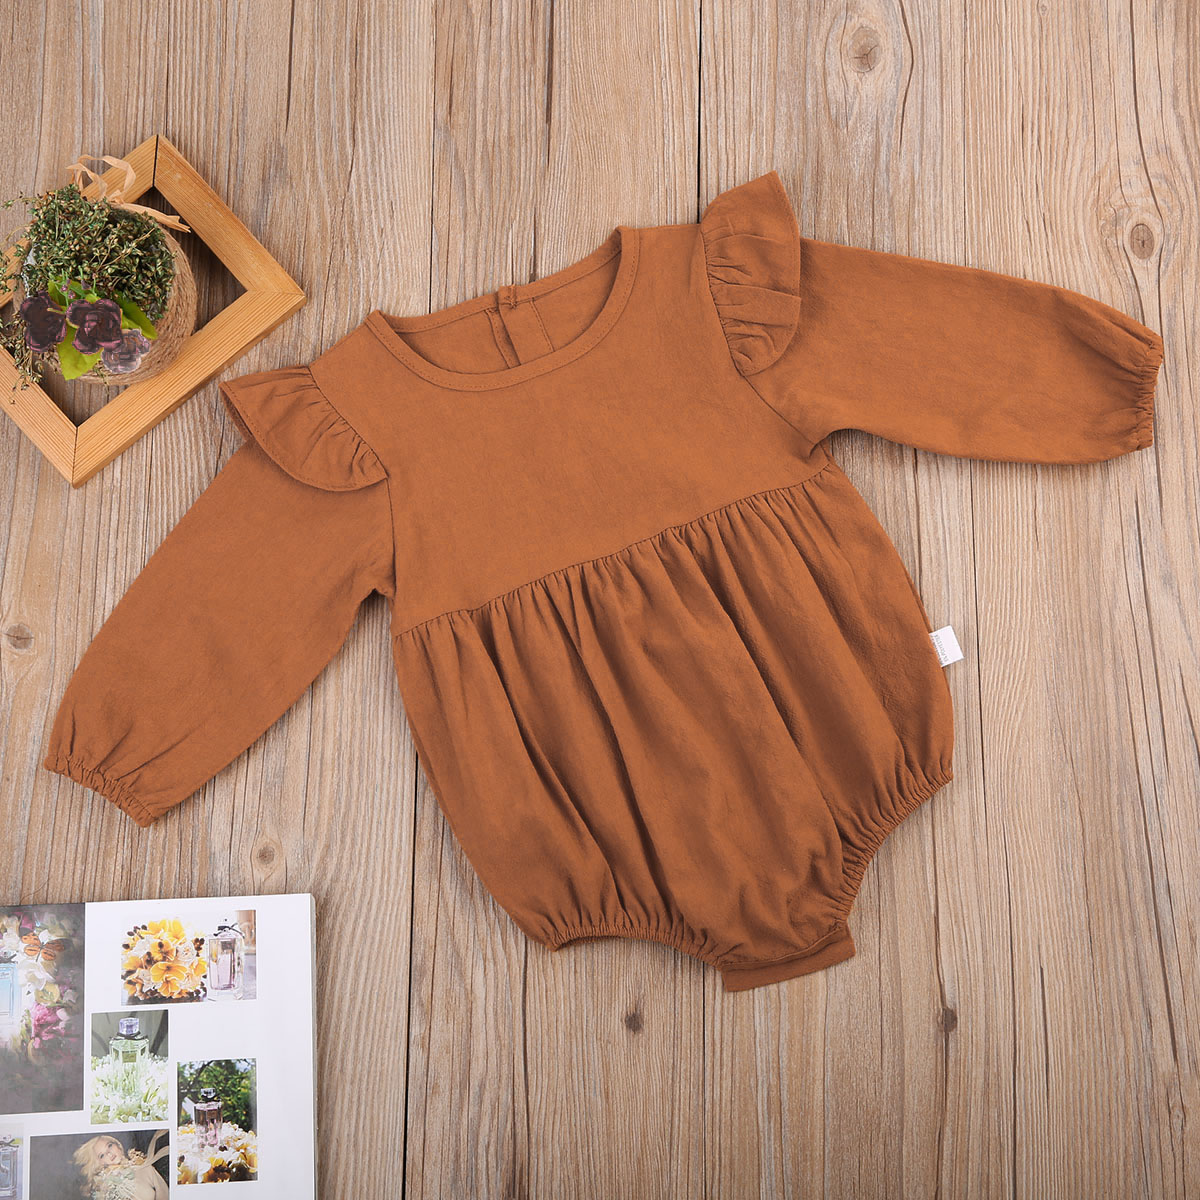 Pudcoco Solid Cotton Baby Autumn Rompers Vintage Baby Girl Romper Long Sleeve Baby Clothes 3m 3Years Pudcoco Solid Cotton Baby Autumn Rompers Vintage Baby Girl Romper Long Sleeve Baby Clothes 3m - 3Years